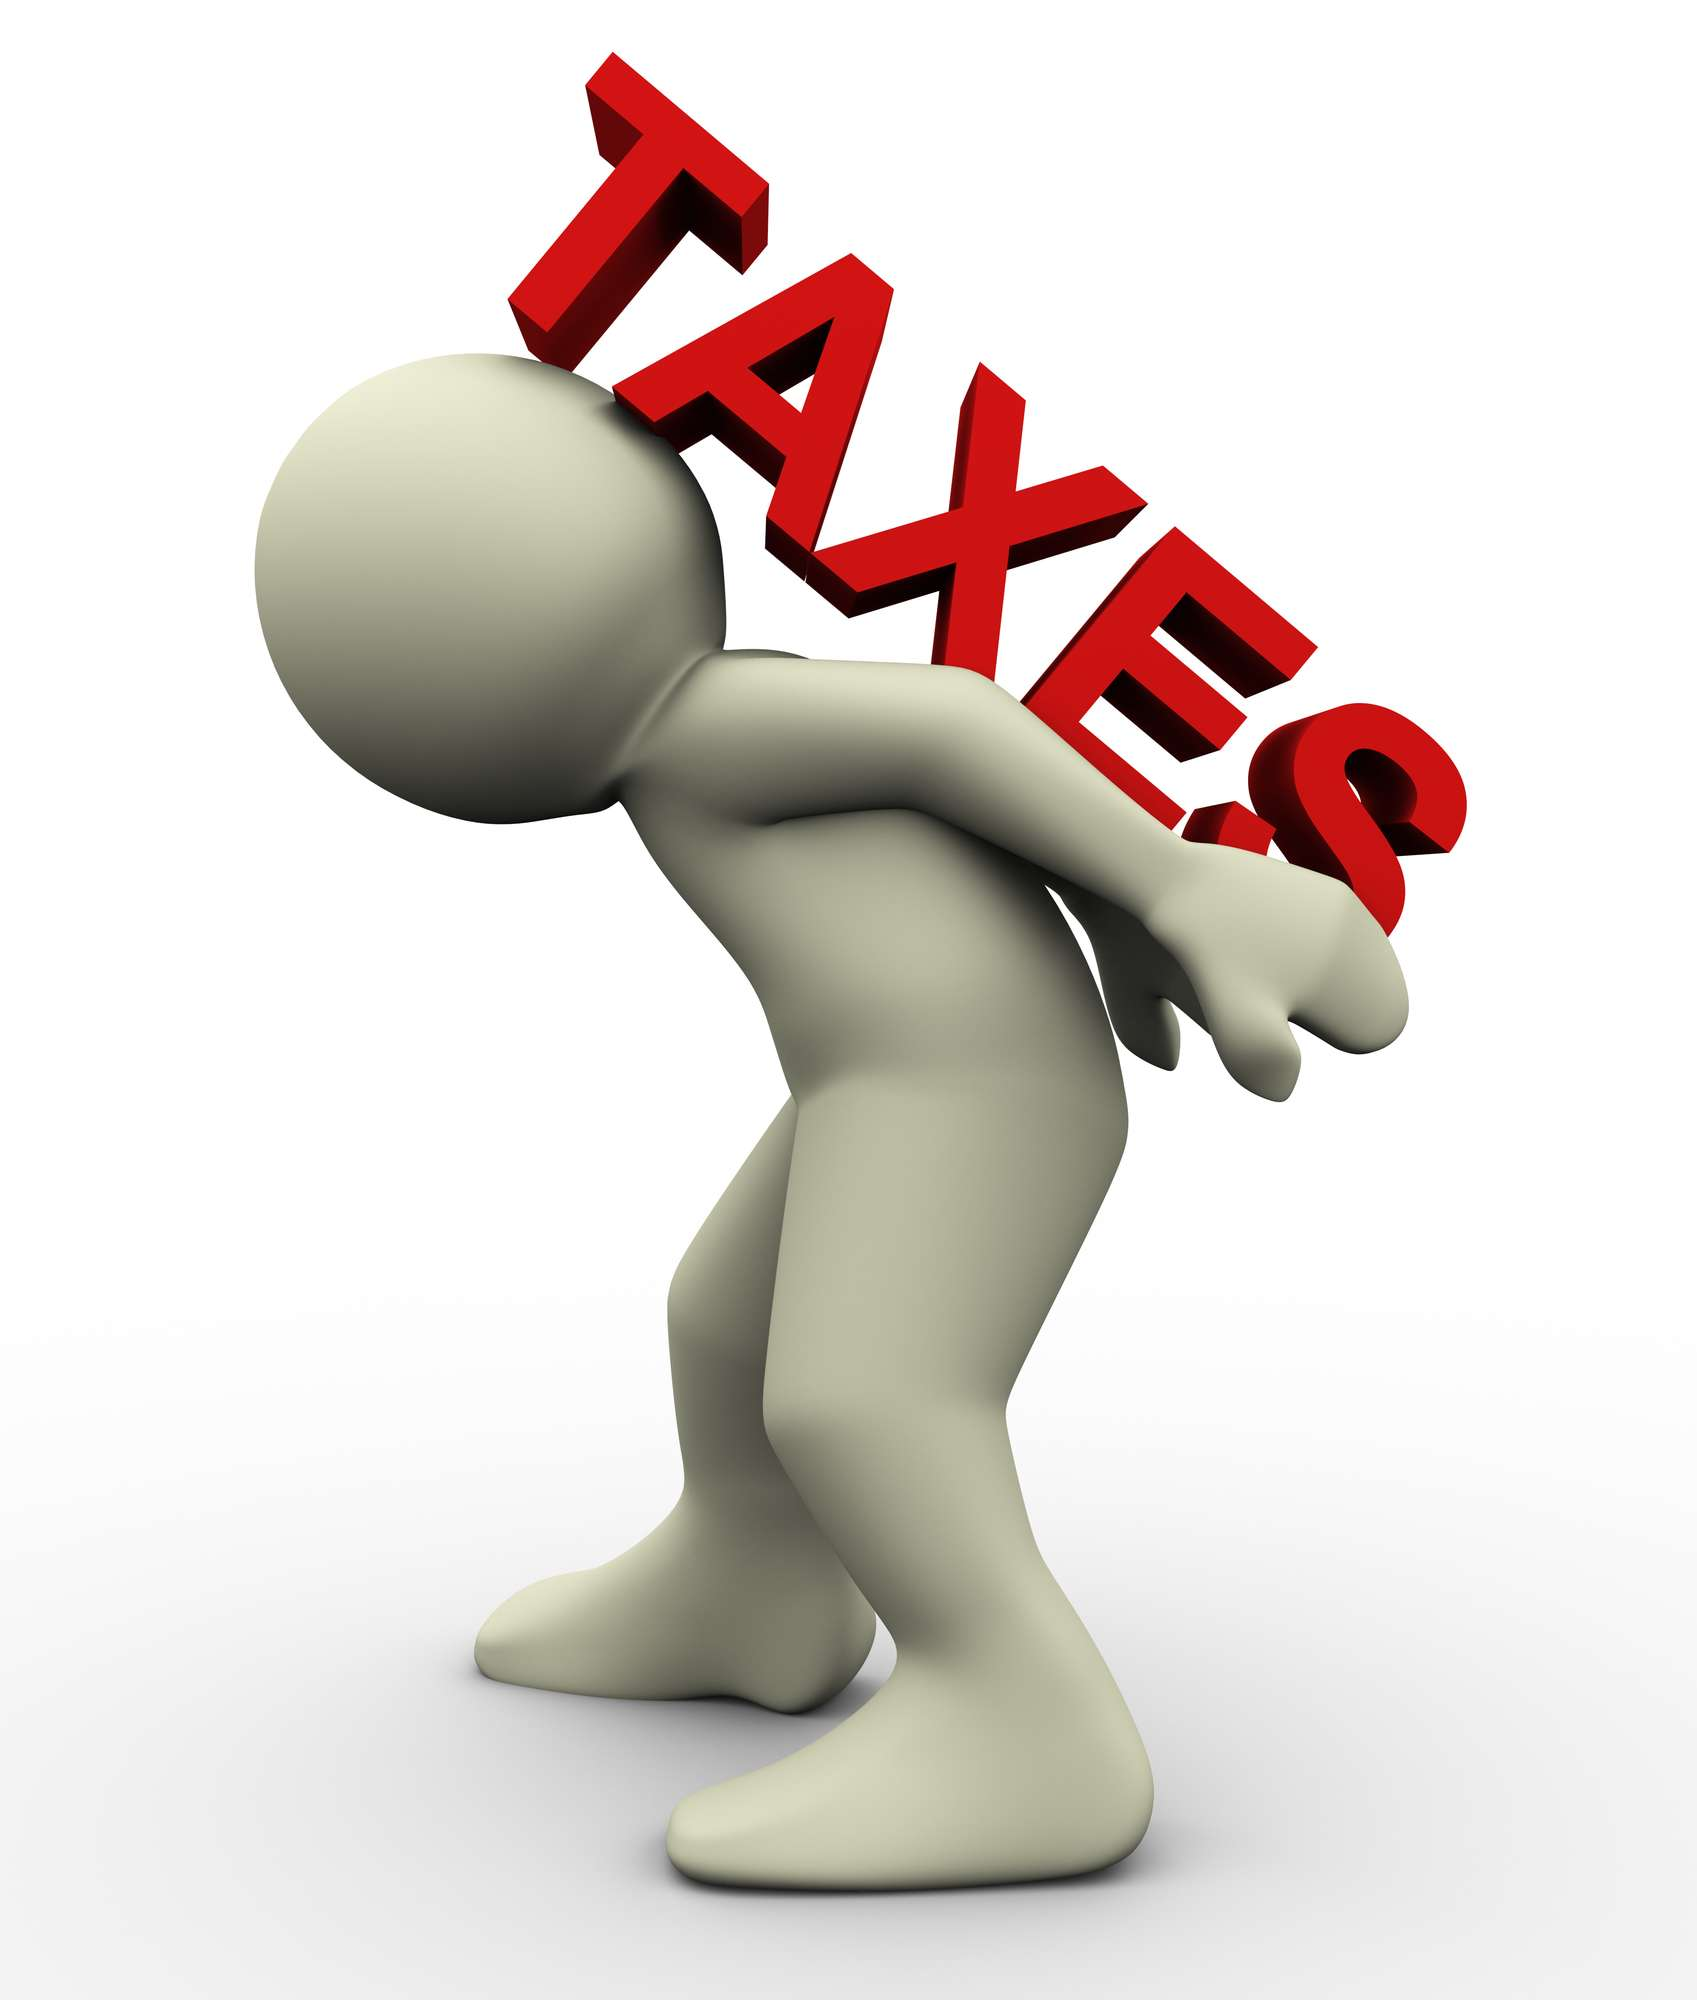 Several tax law changes may affect bottom line of many business owners